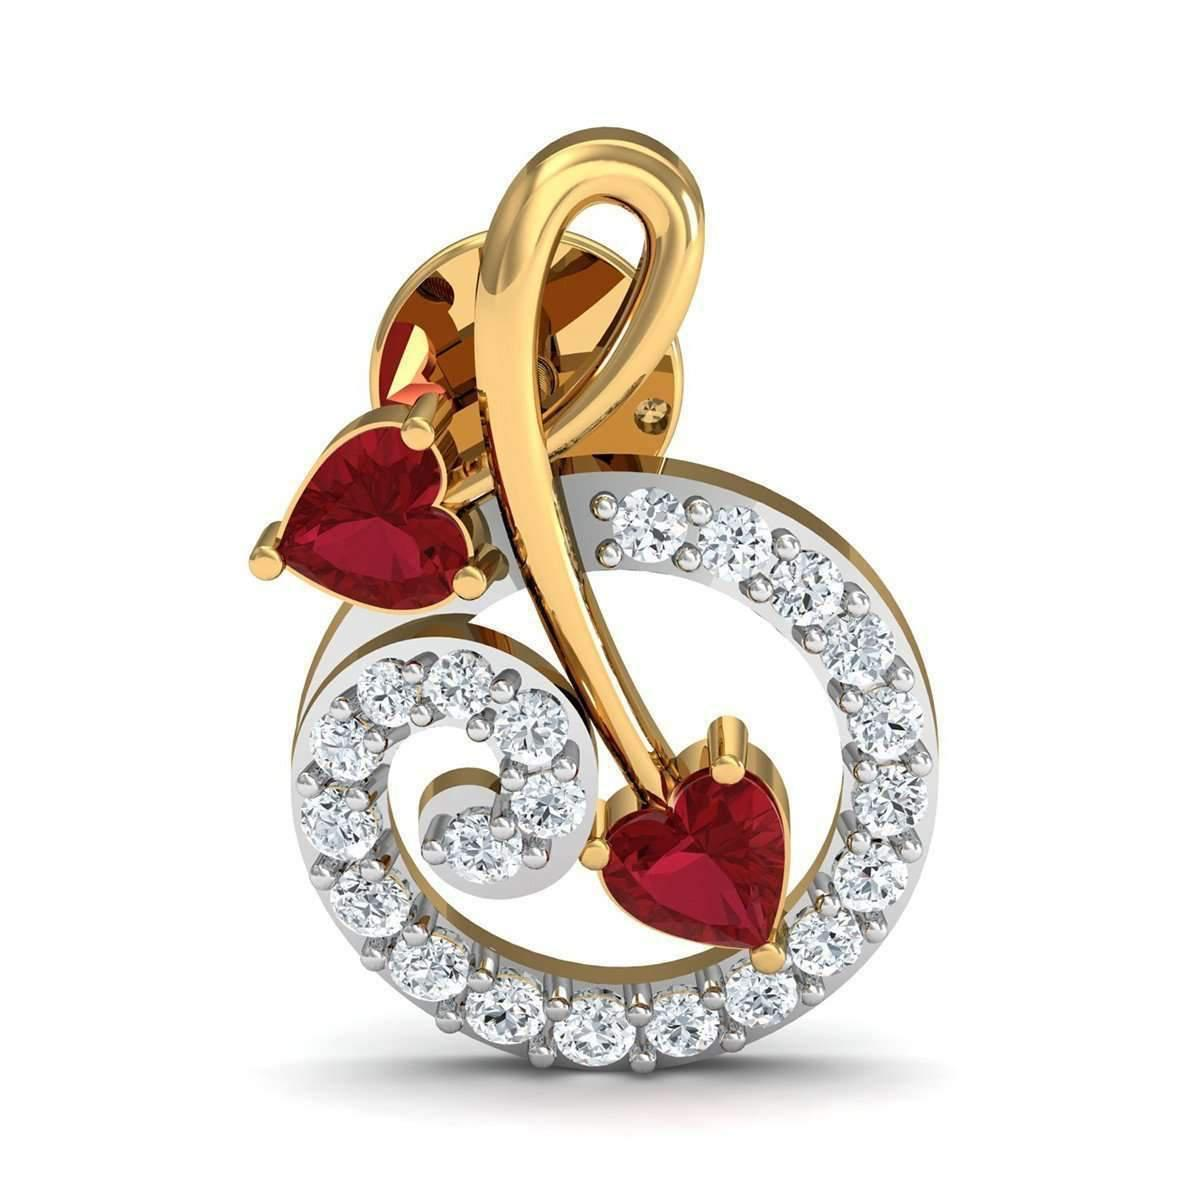 Diamoire Jewels Heart Shaped Ruby and Diamonds Pave 14kt Yellow Gold Earrings OxtM7sA